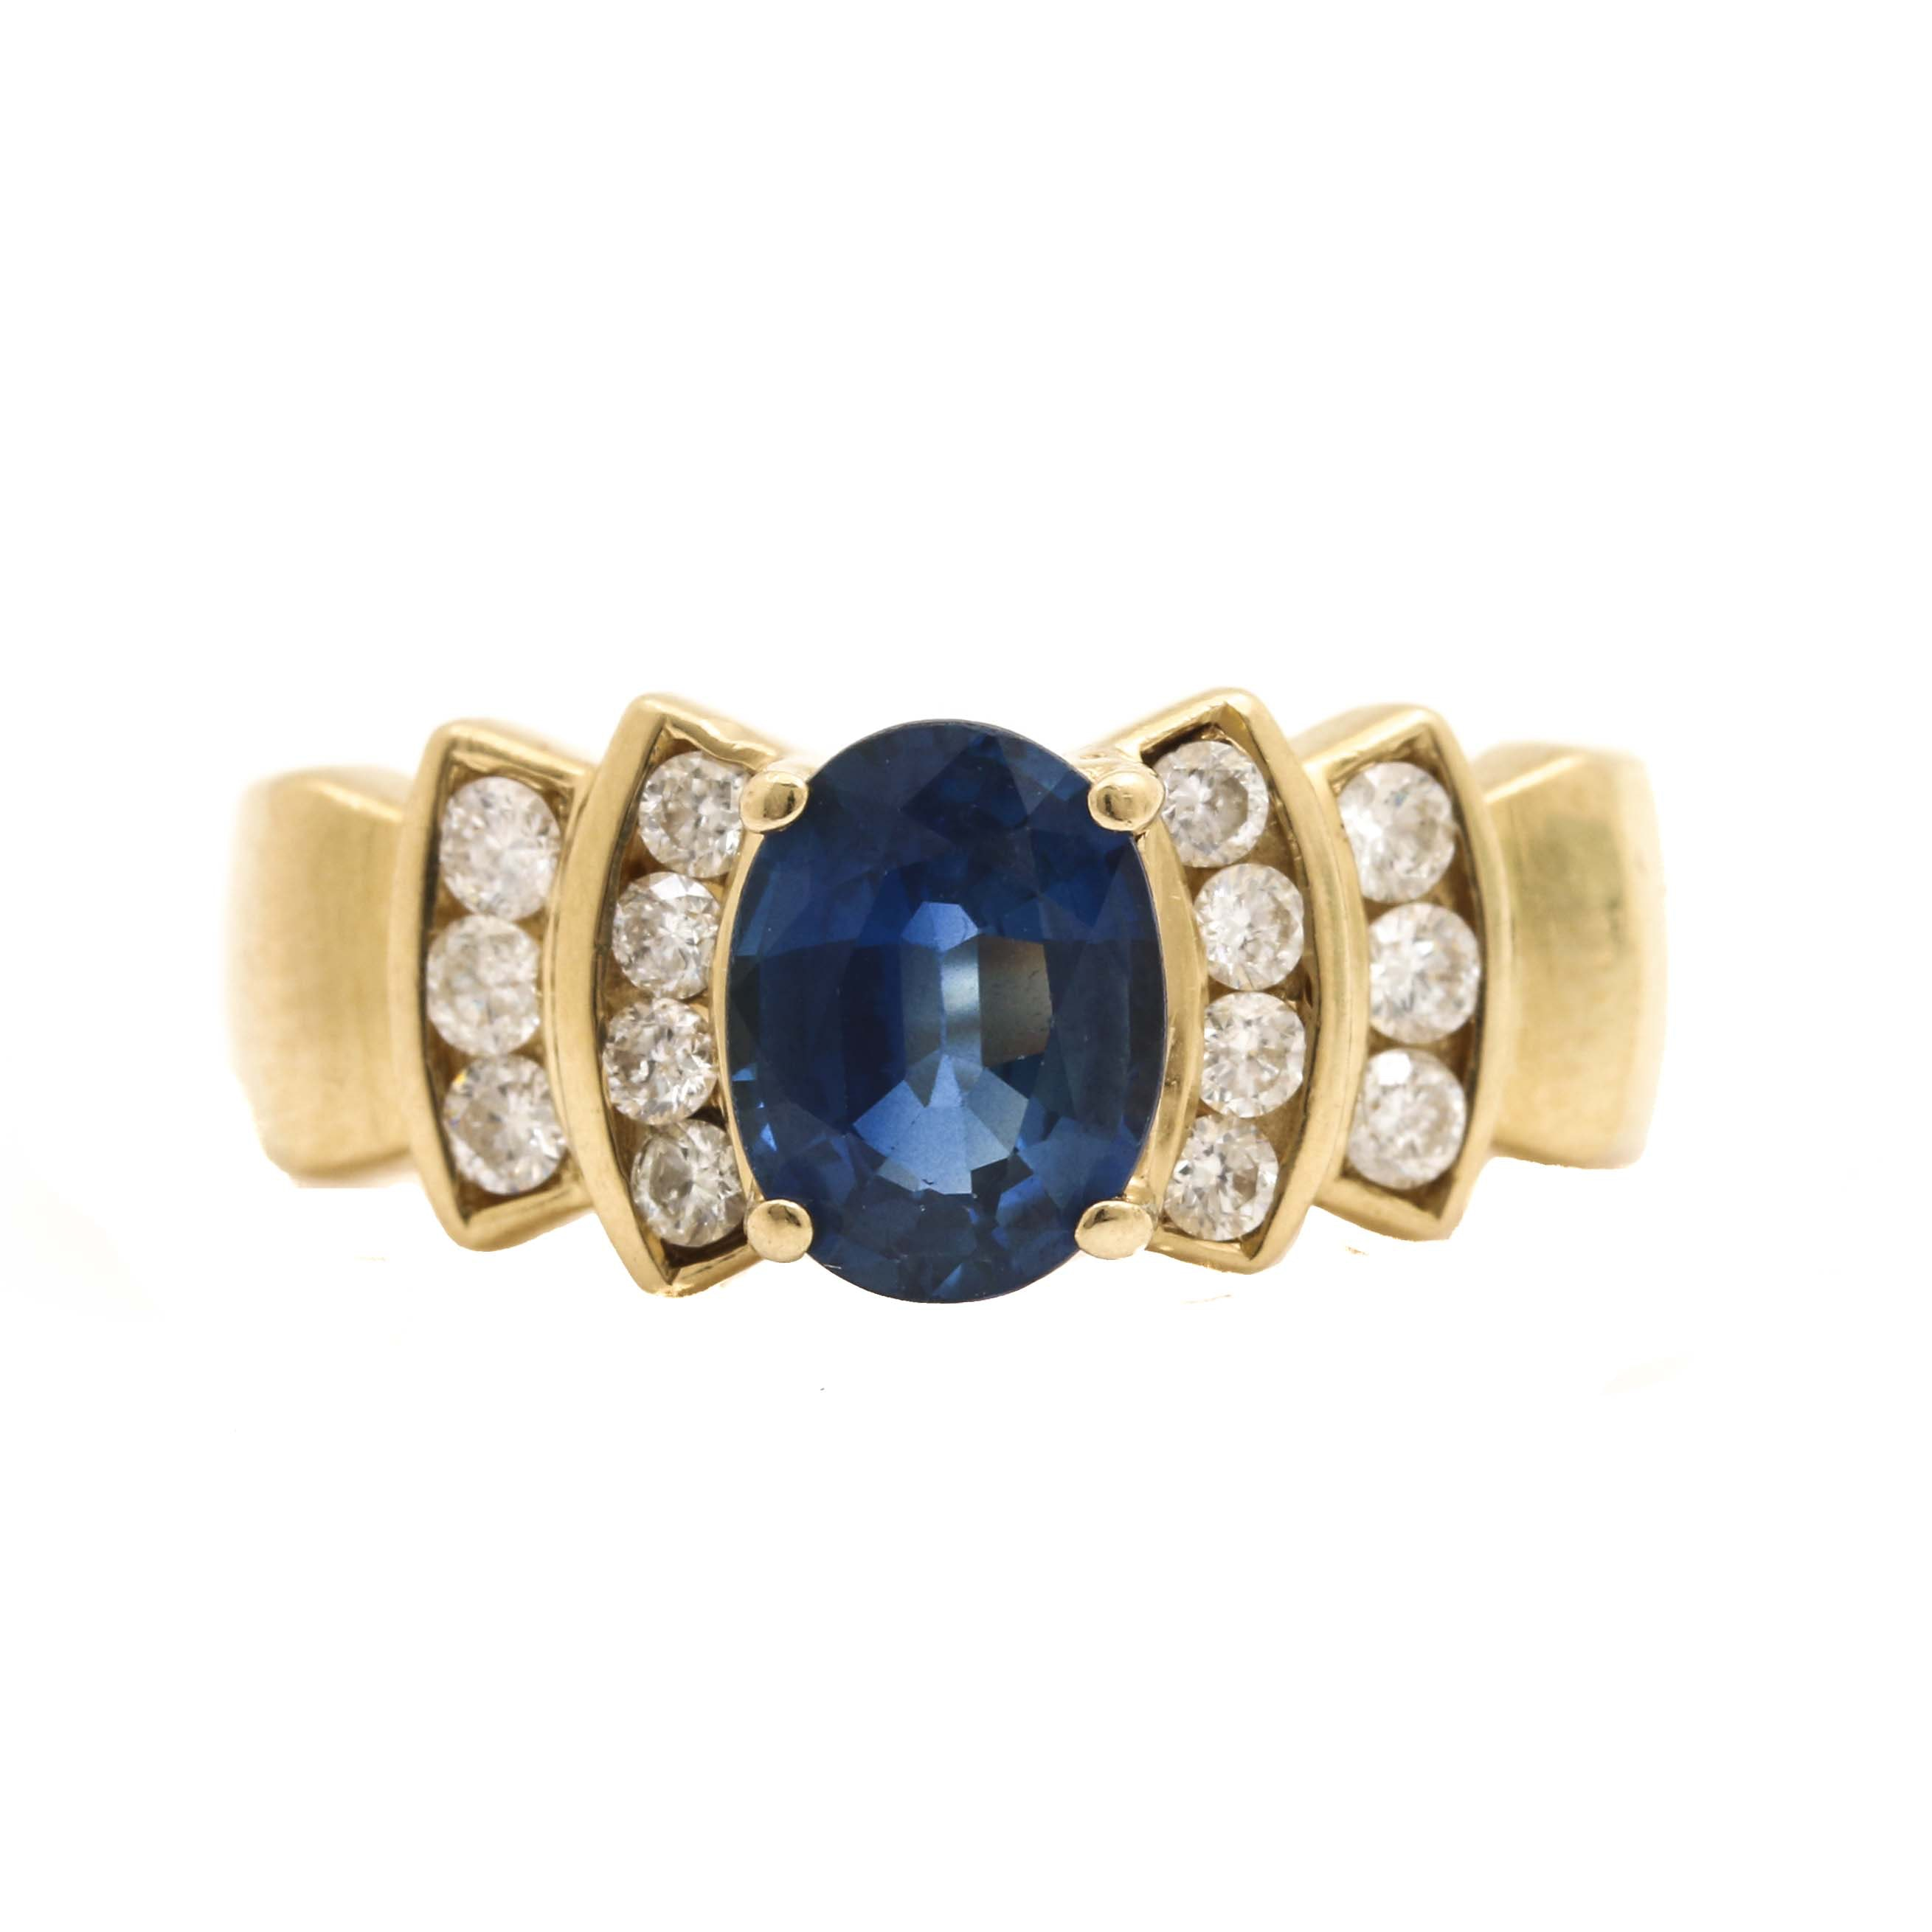 LeVian 14K Yellow Gold Sapphire and Diamond Ring